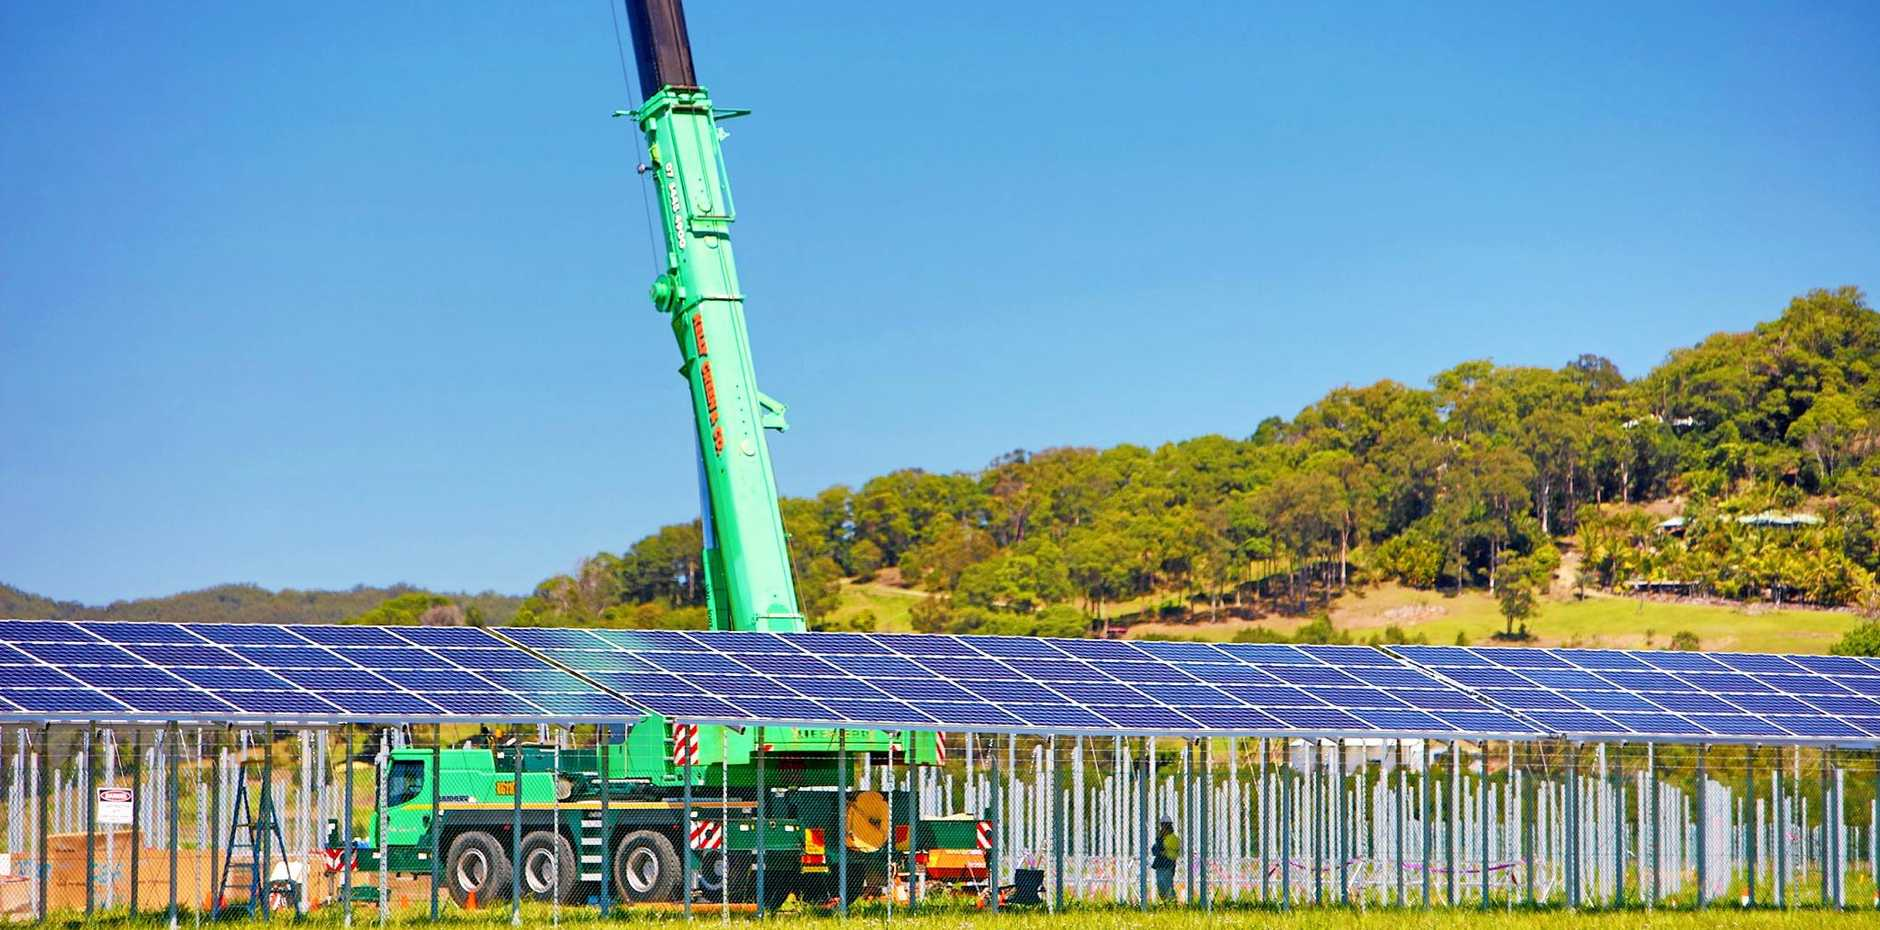 The first solar panels have been positioned at the Sunshine Coast Solar Farm, Valdora.